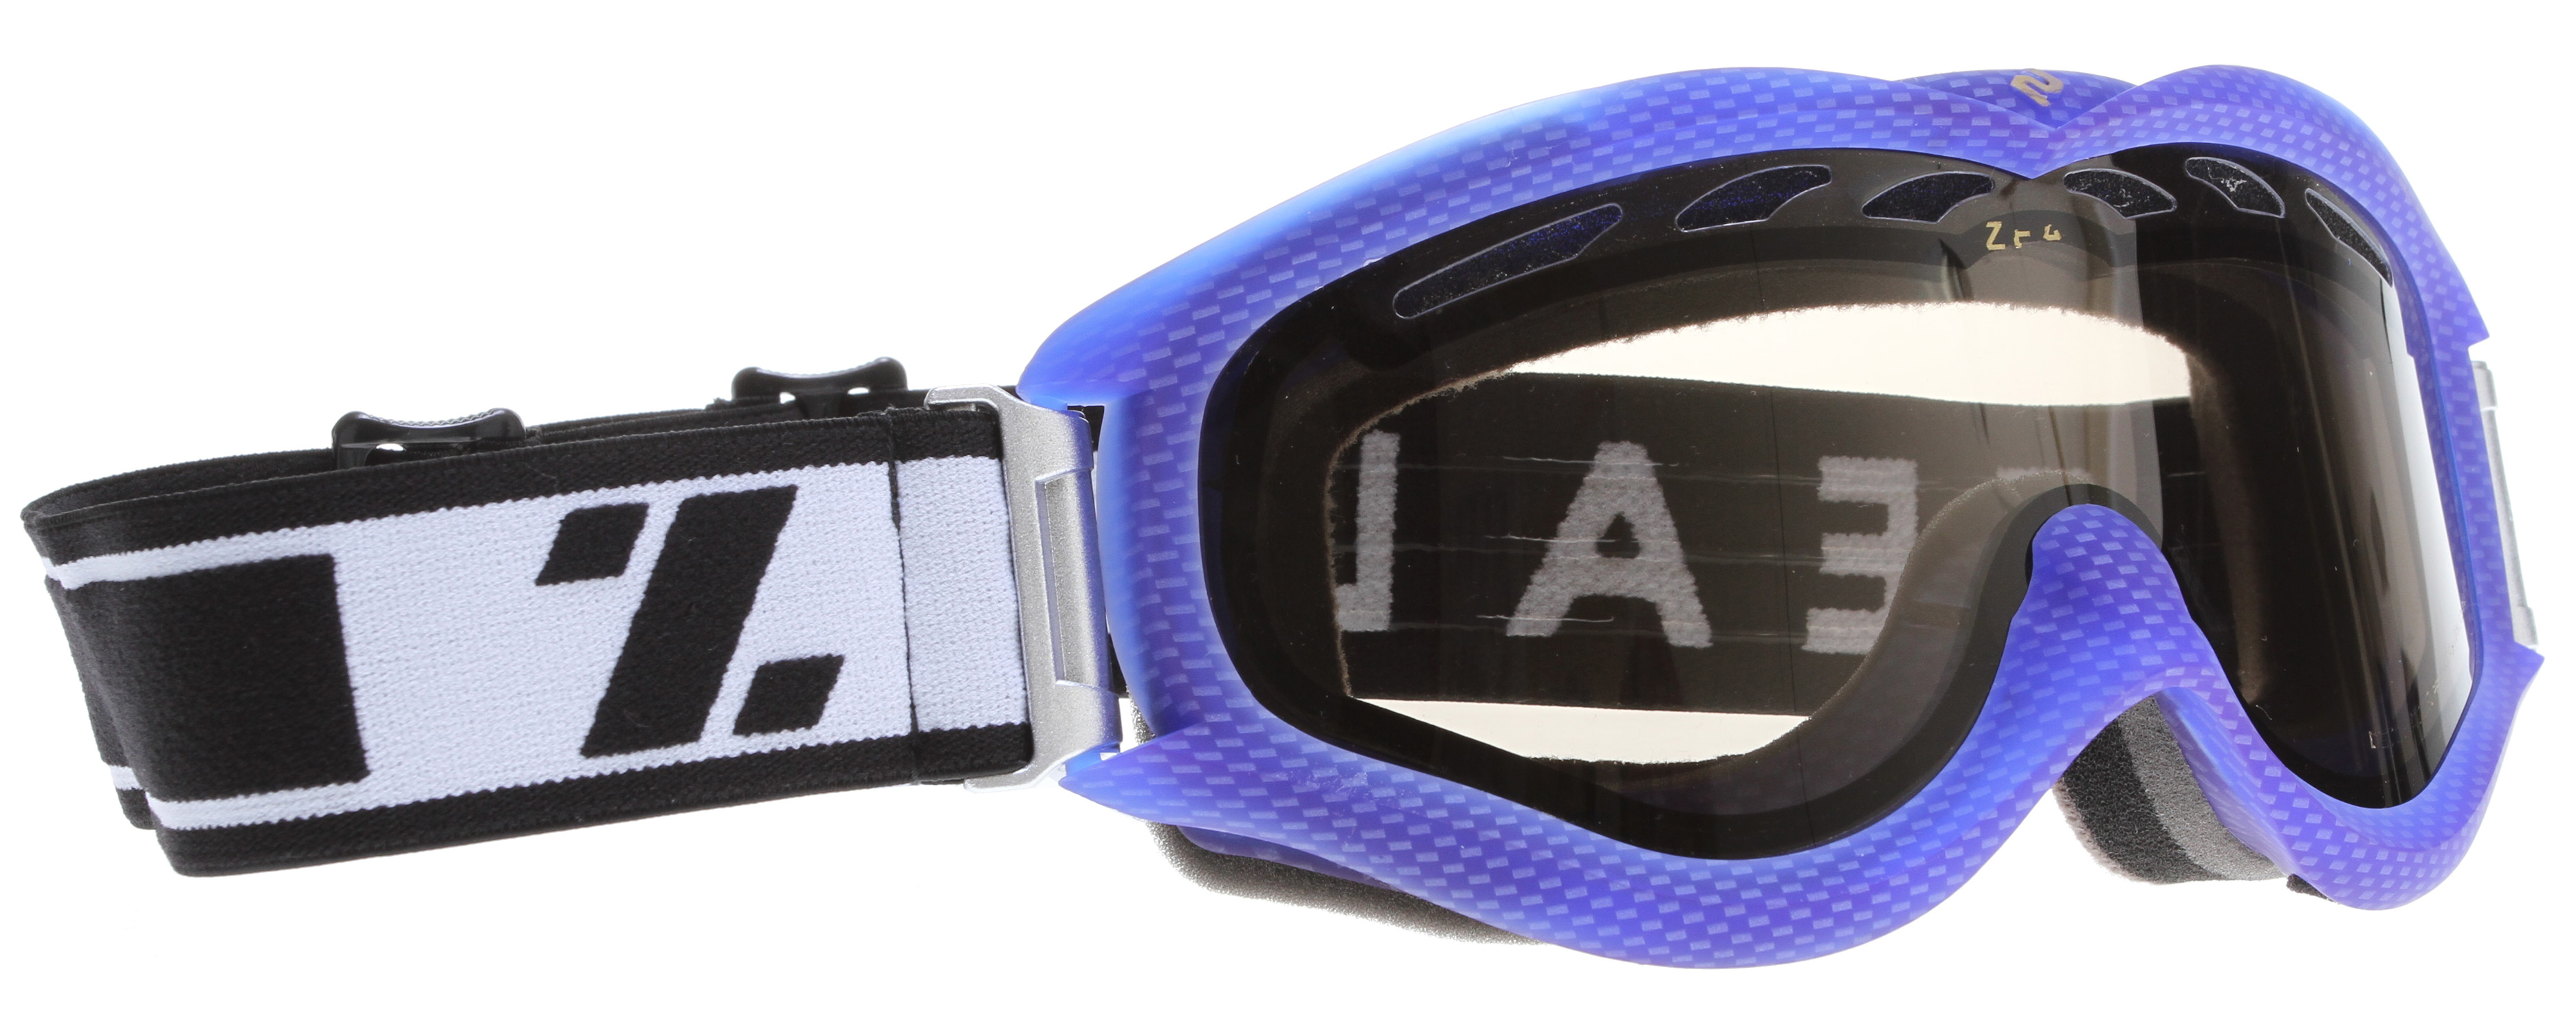 Ski Key Features of the Zeal Detonator Goggles: ZB Polarized lens enhances vision and reduces eye strain Air intake boosters increase ventilation around the lens to fight fog 100% UV protection Triple-layer fleece face foam is soft on skin Adjustable, grippy strap Helmet compatible Fit: Large - $95.95